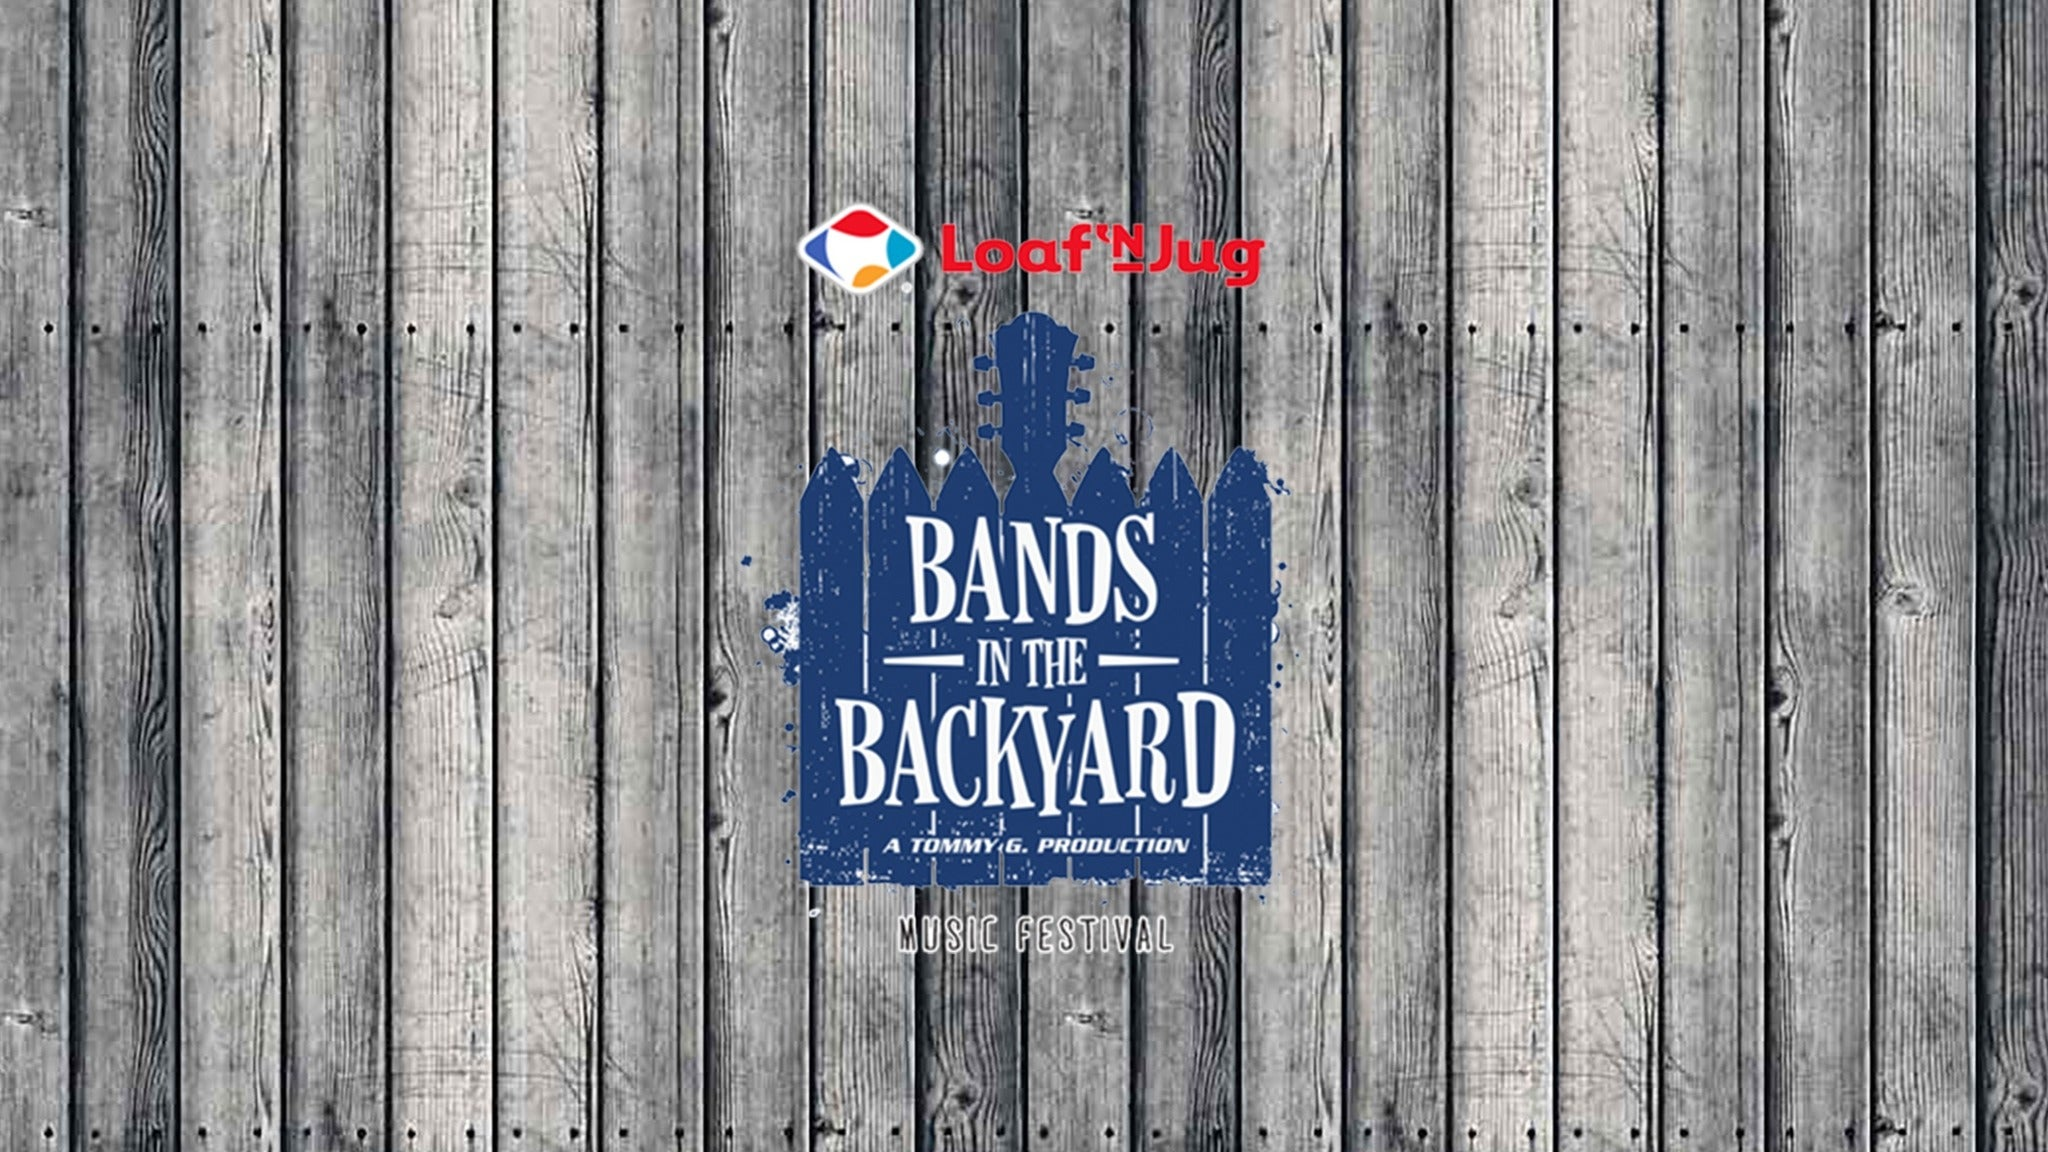 Bands in the Backyard Tickets, 2020-2021 Concert Tour ...